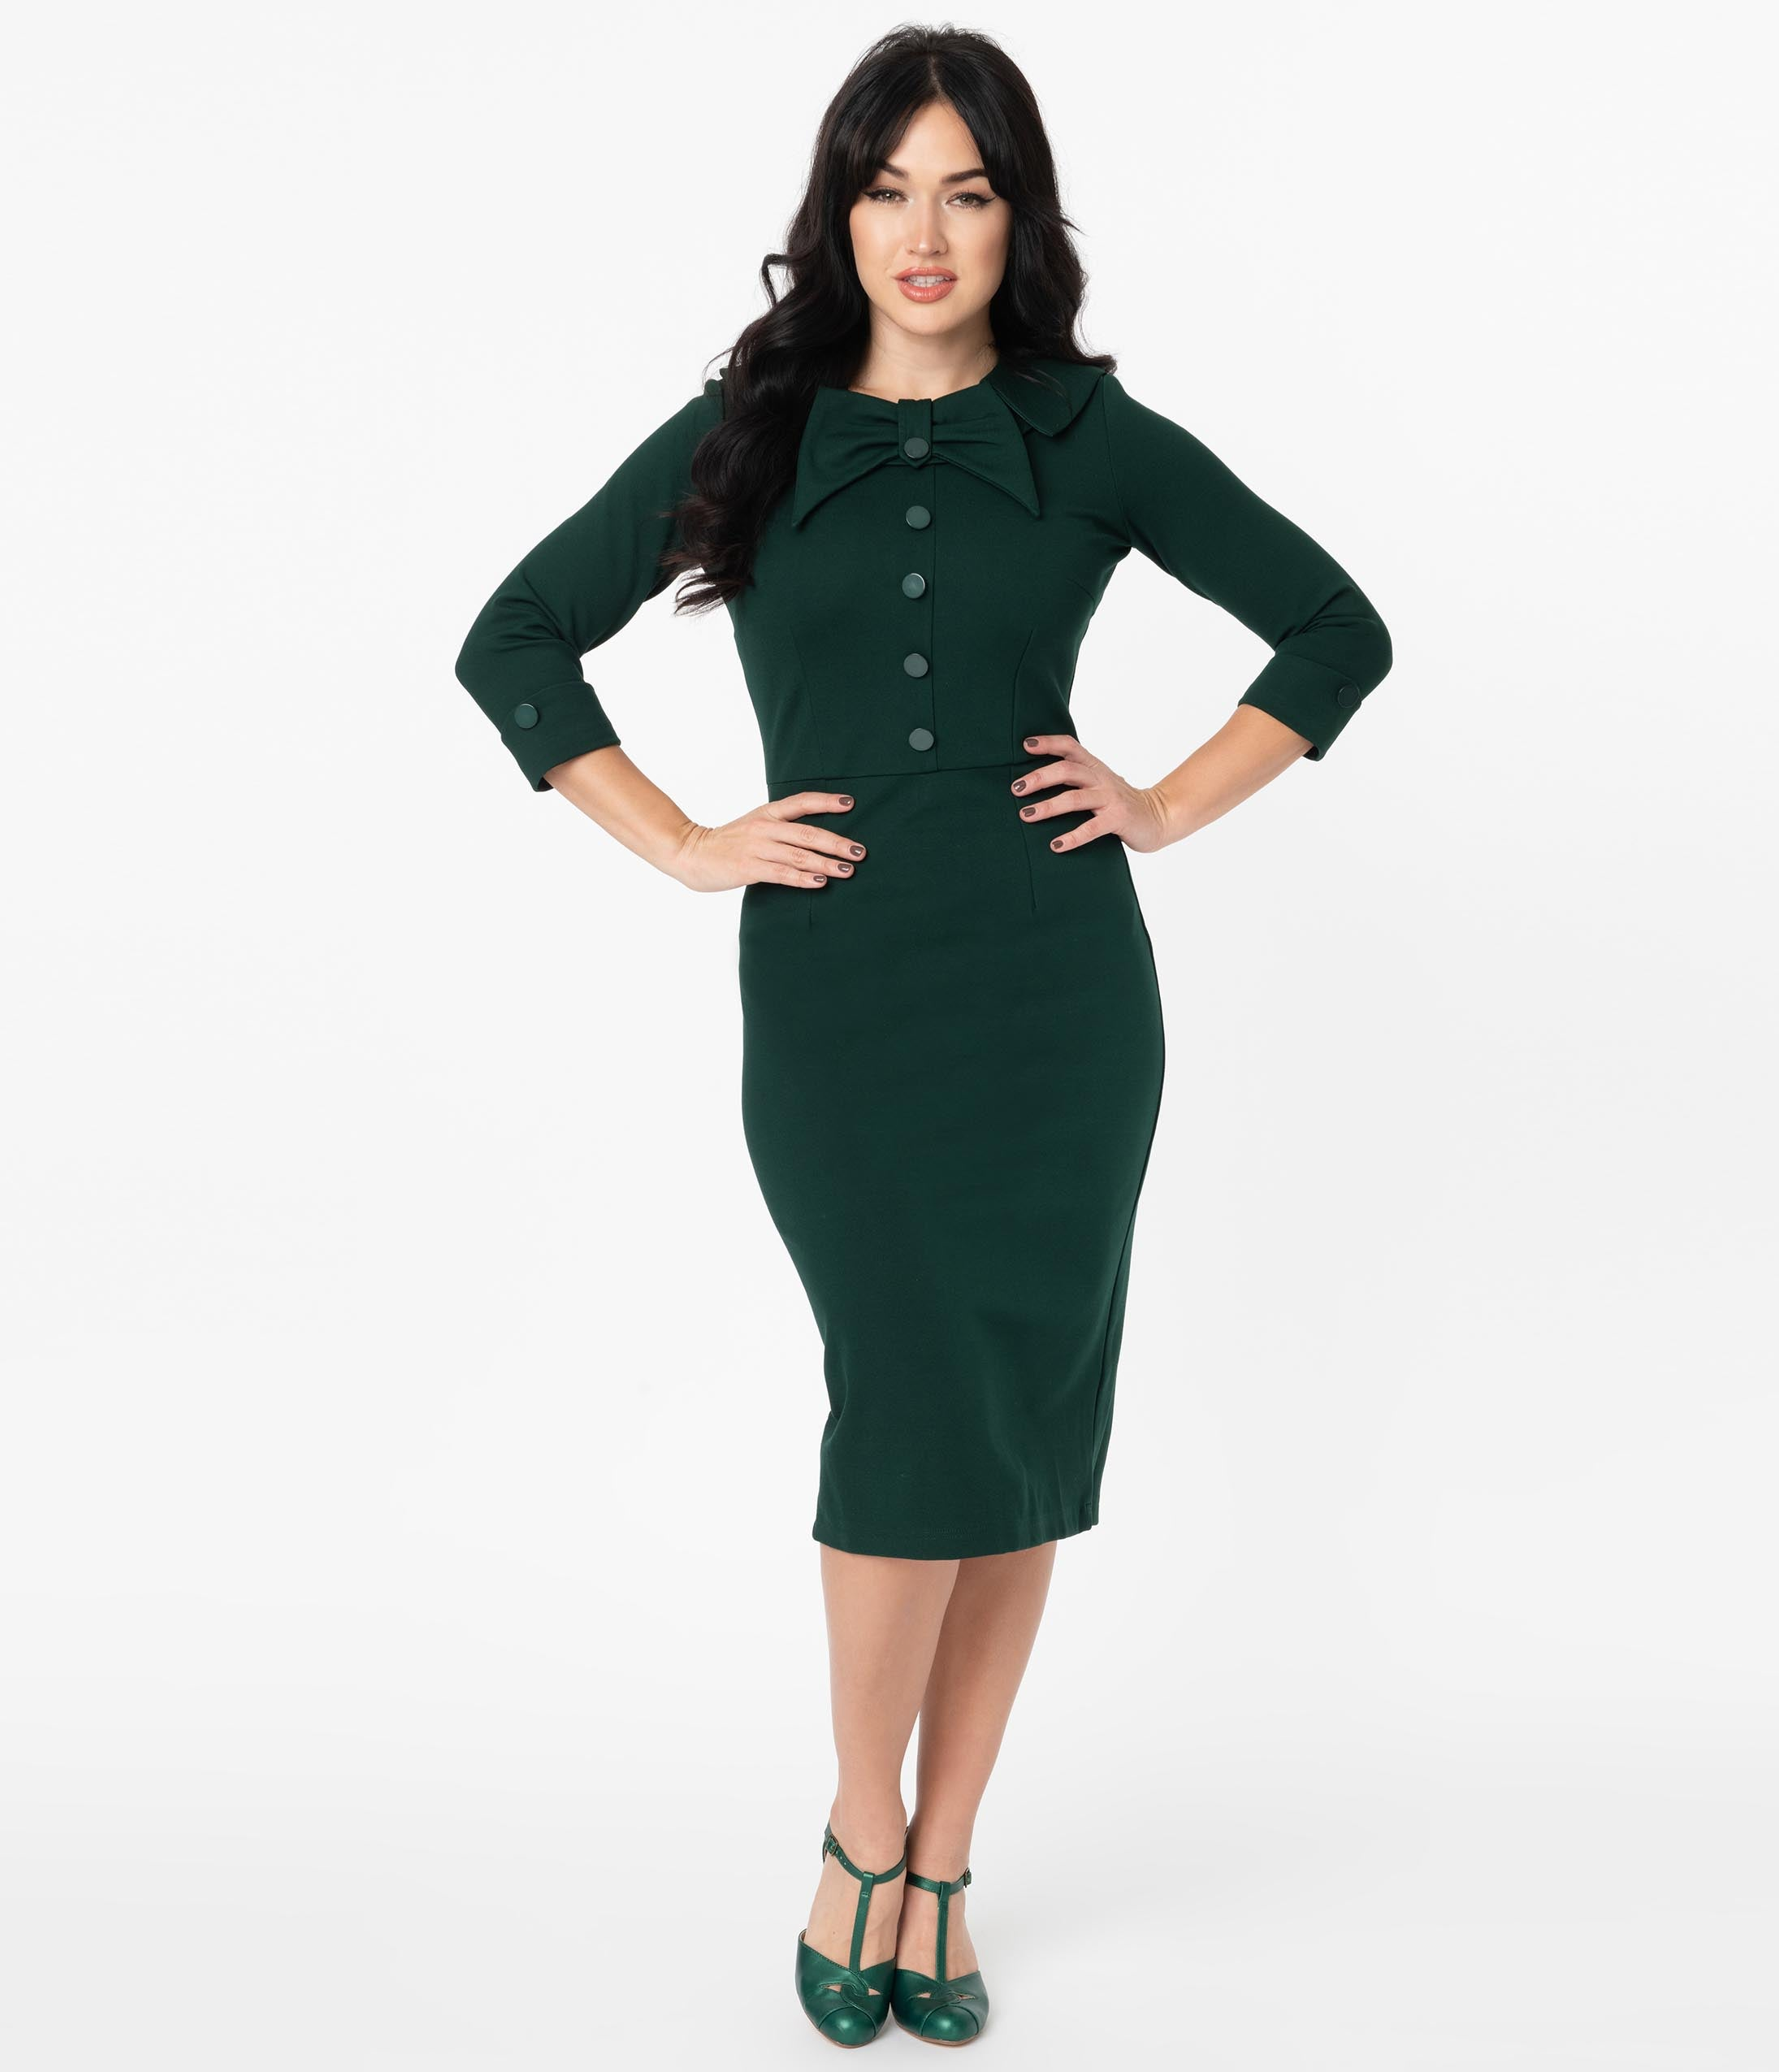 Wiggle Dresses | Pencil Dresses 40s, 50s, 60s 1940S Style Dark Green Ceo Wiggle Dress $142.00 AT vintagedancer.com